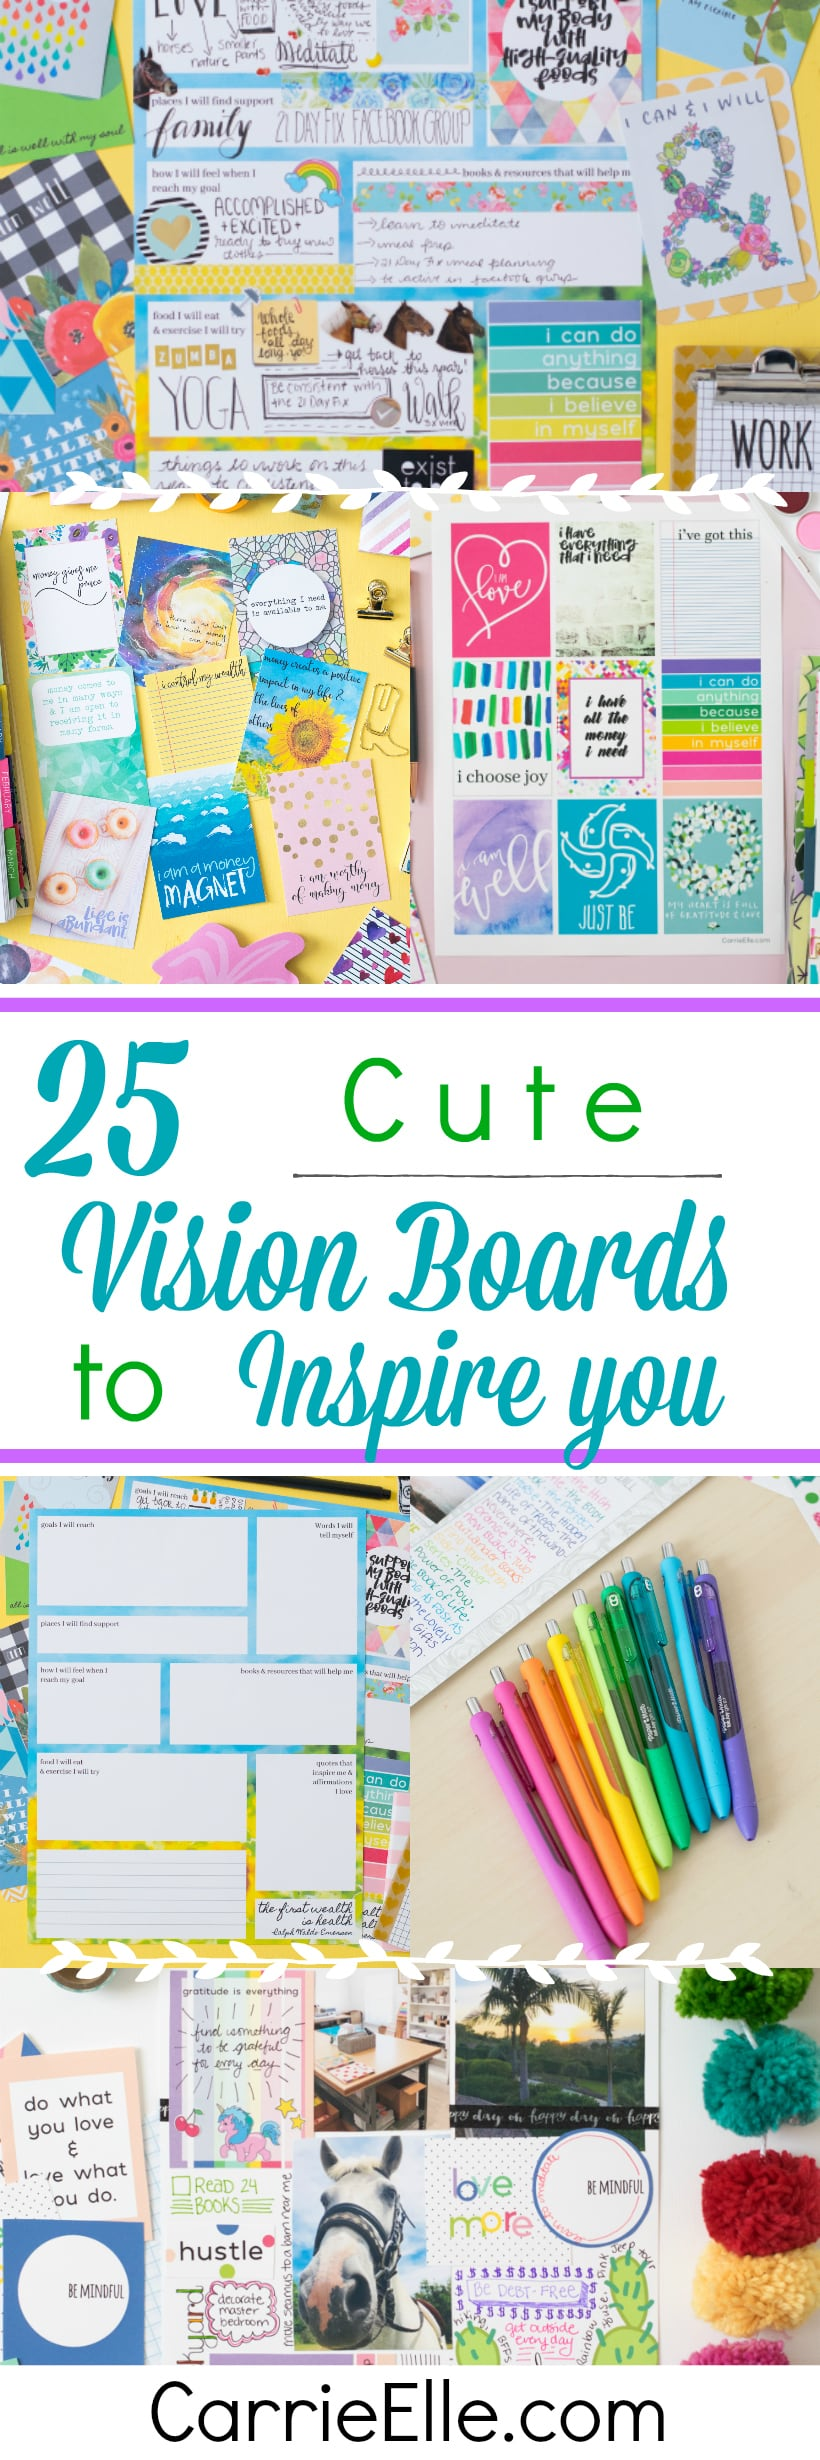 Photos of different vision boards